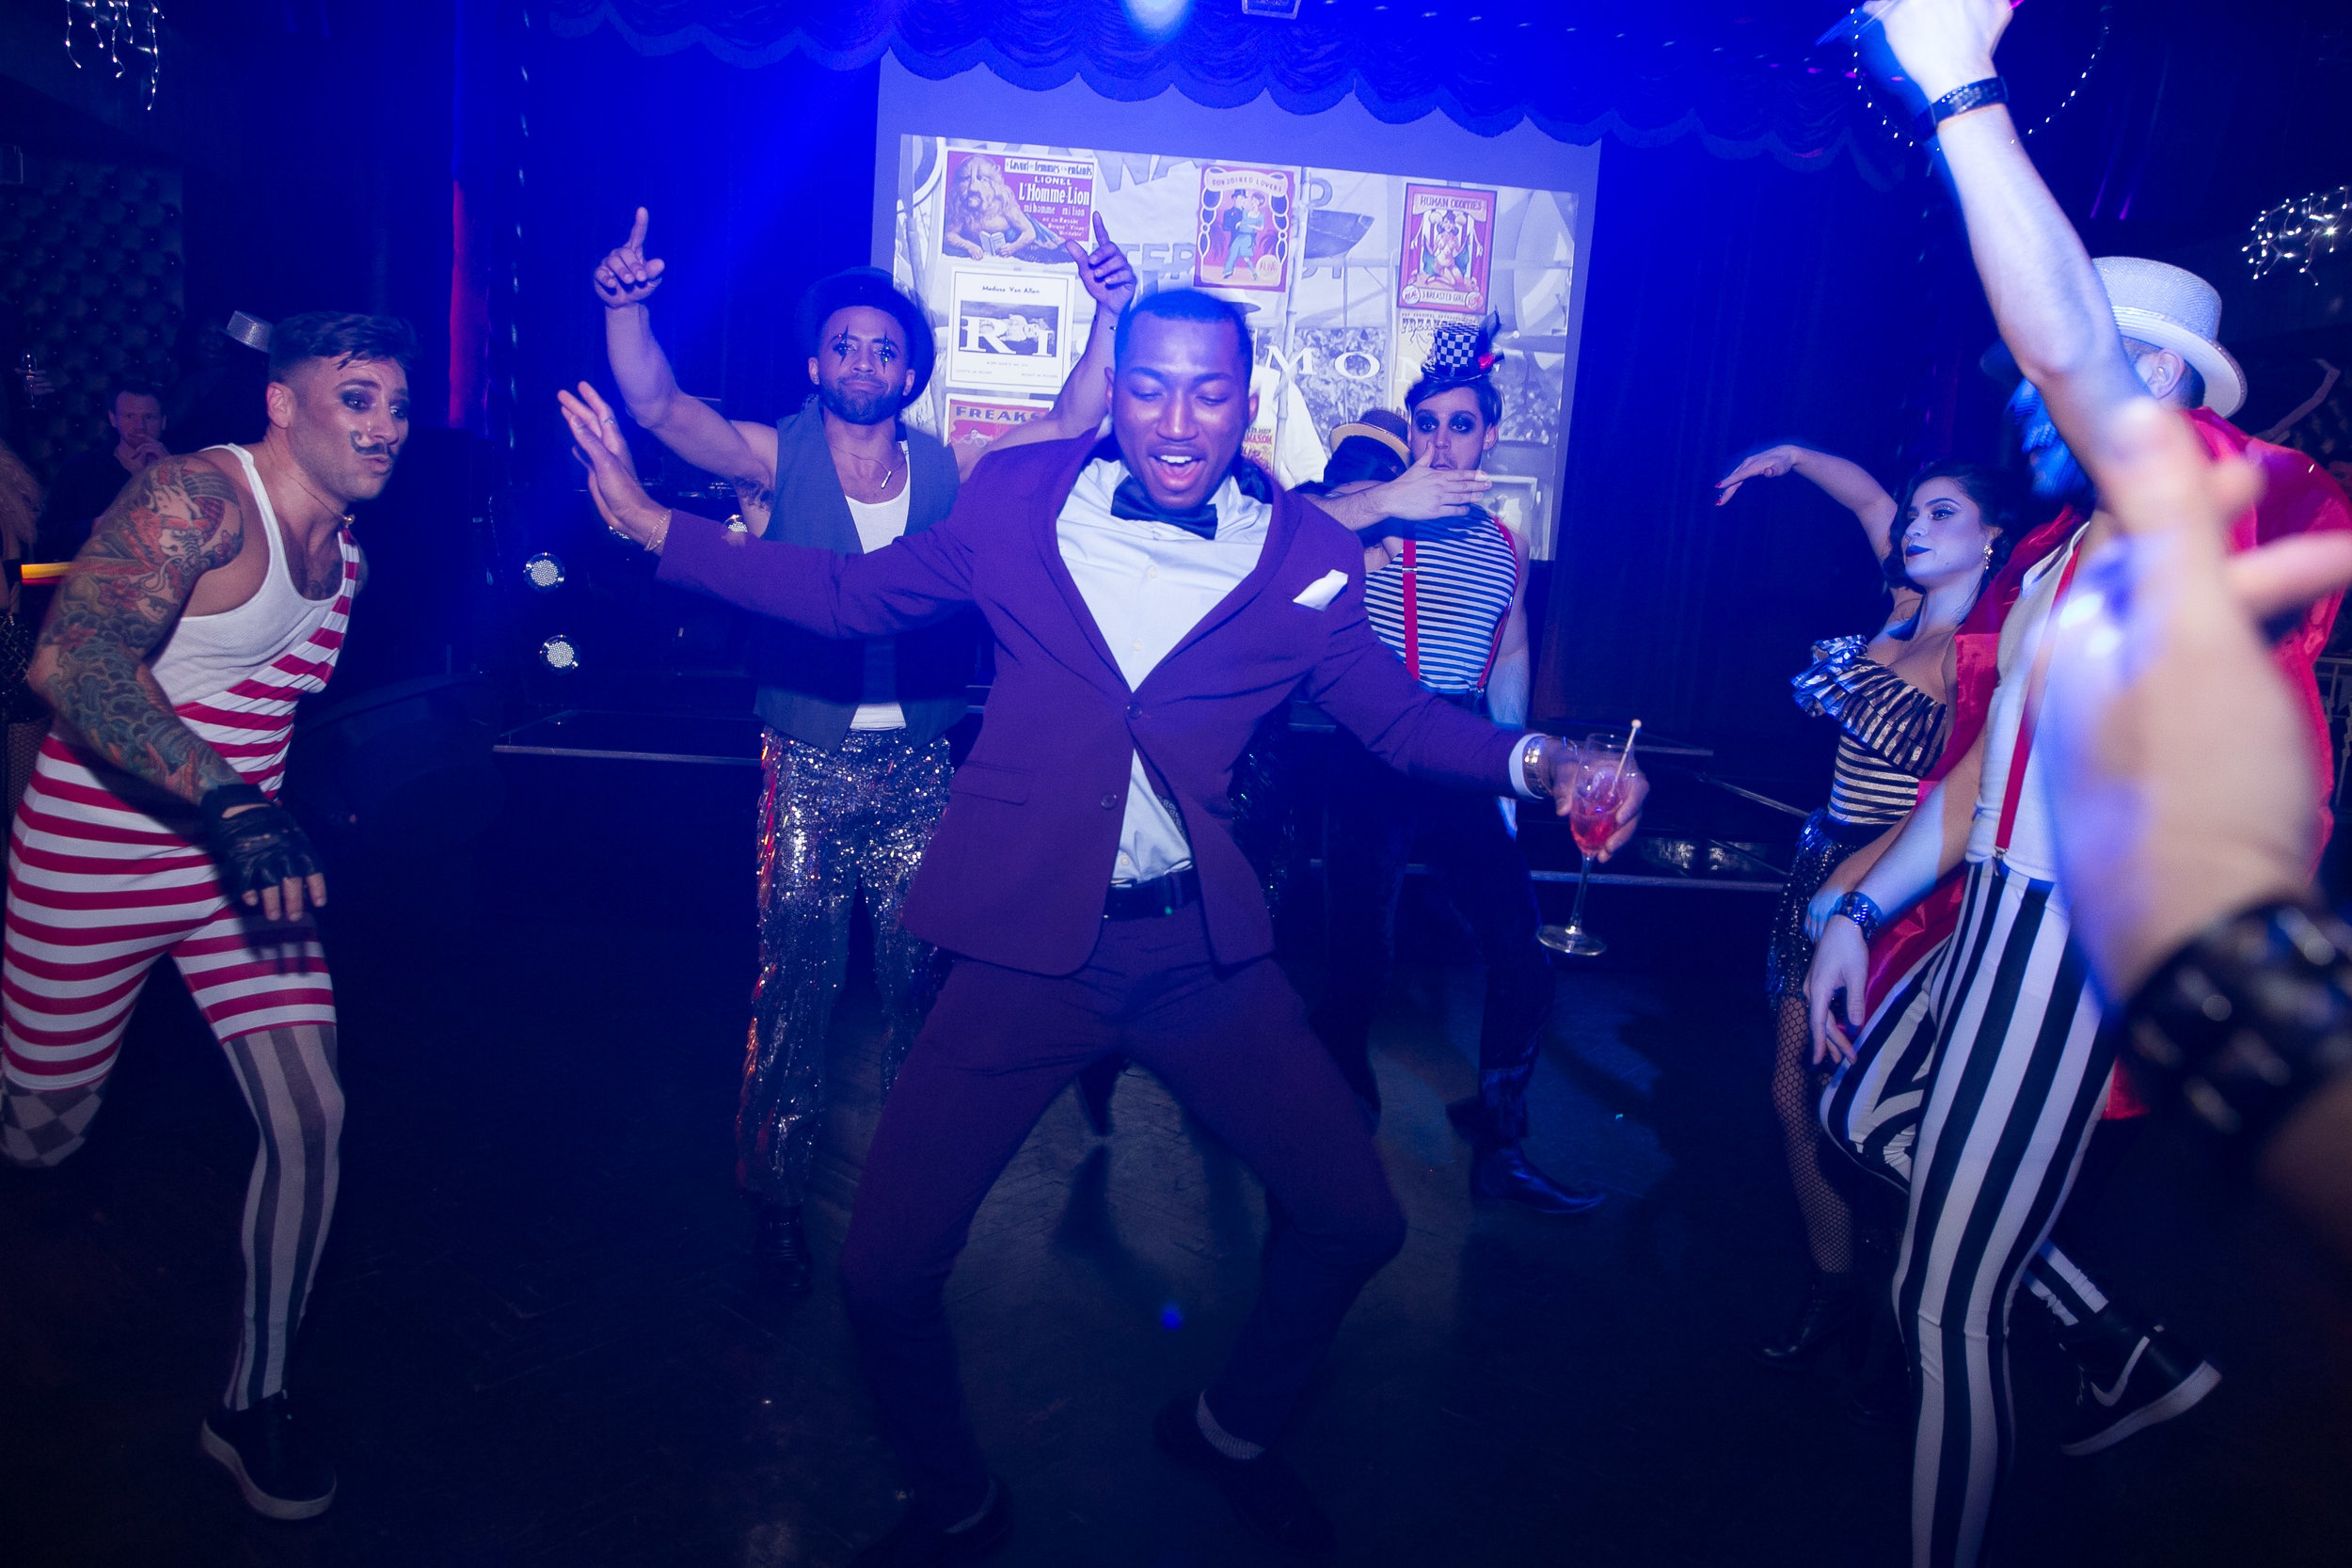 Circus Theme Holiday Party -  click to see full event gallery